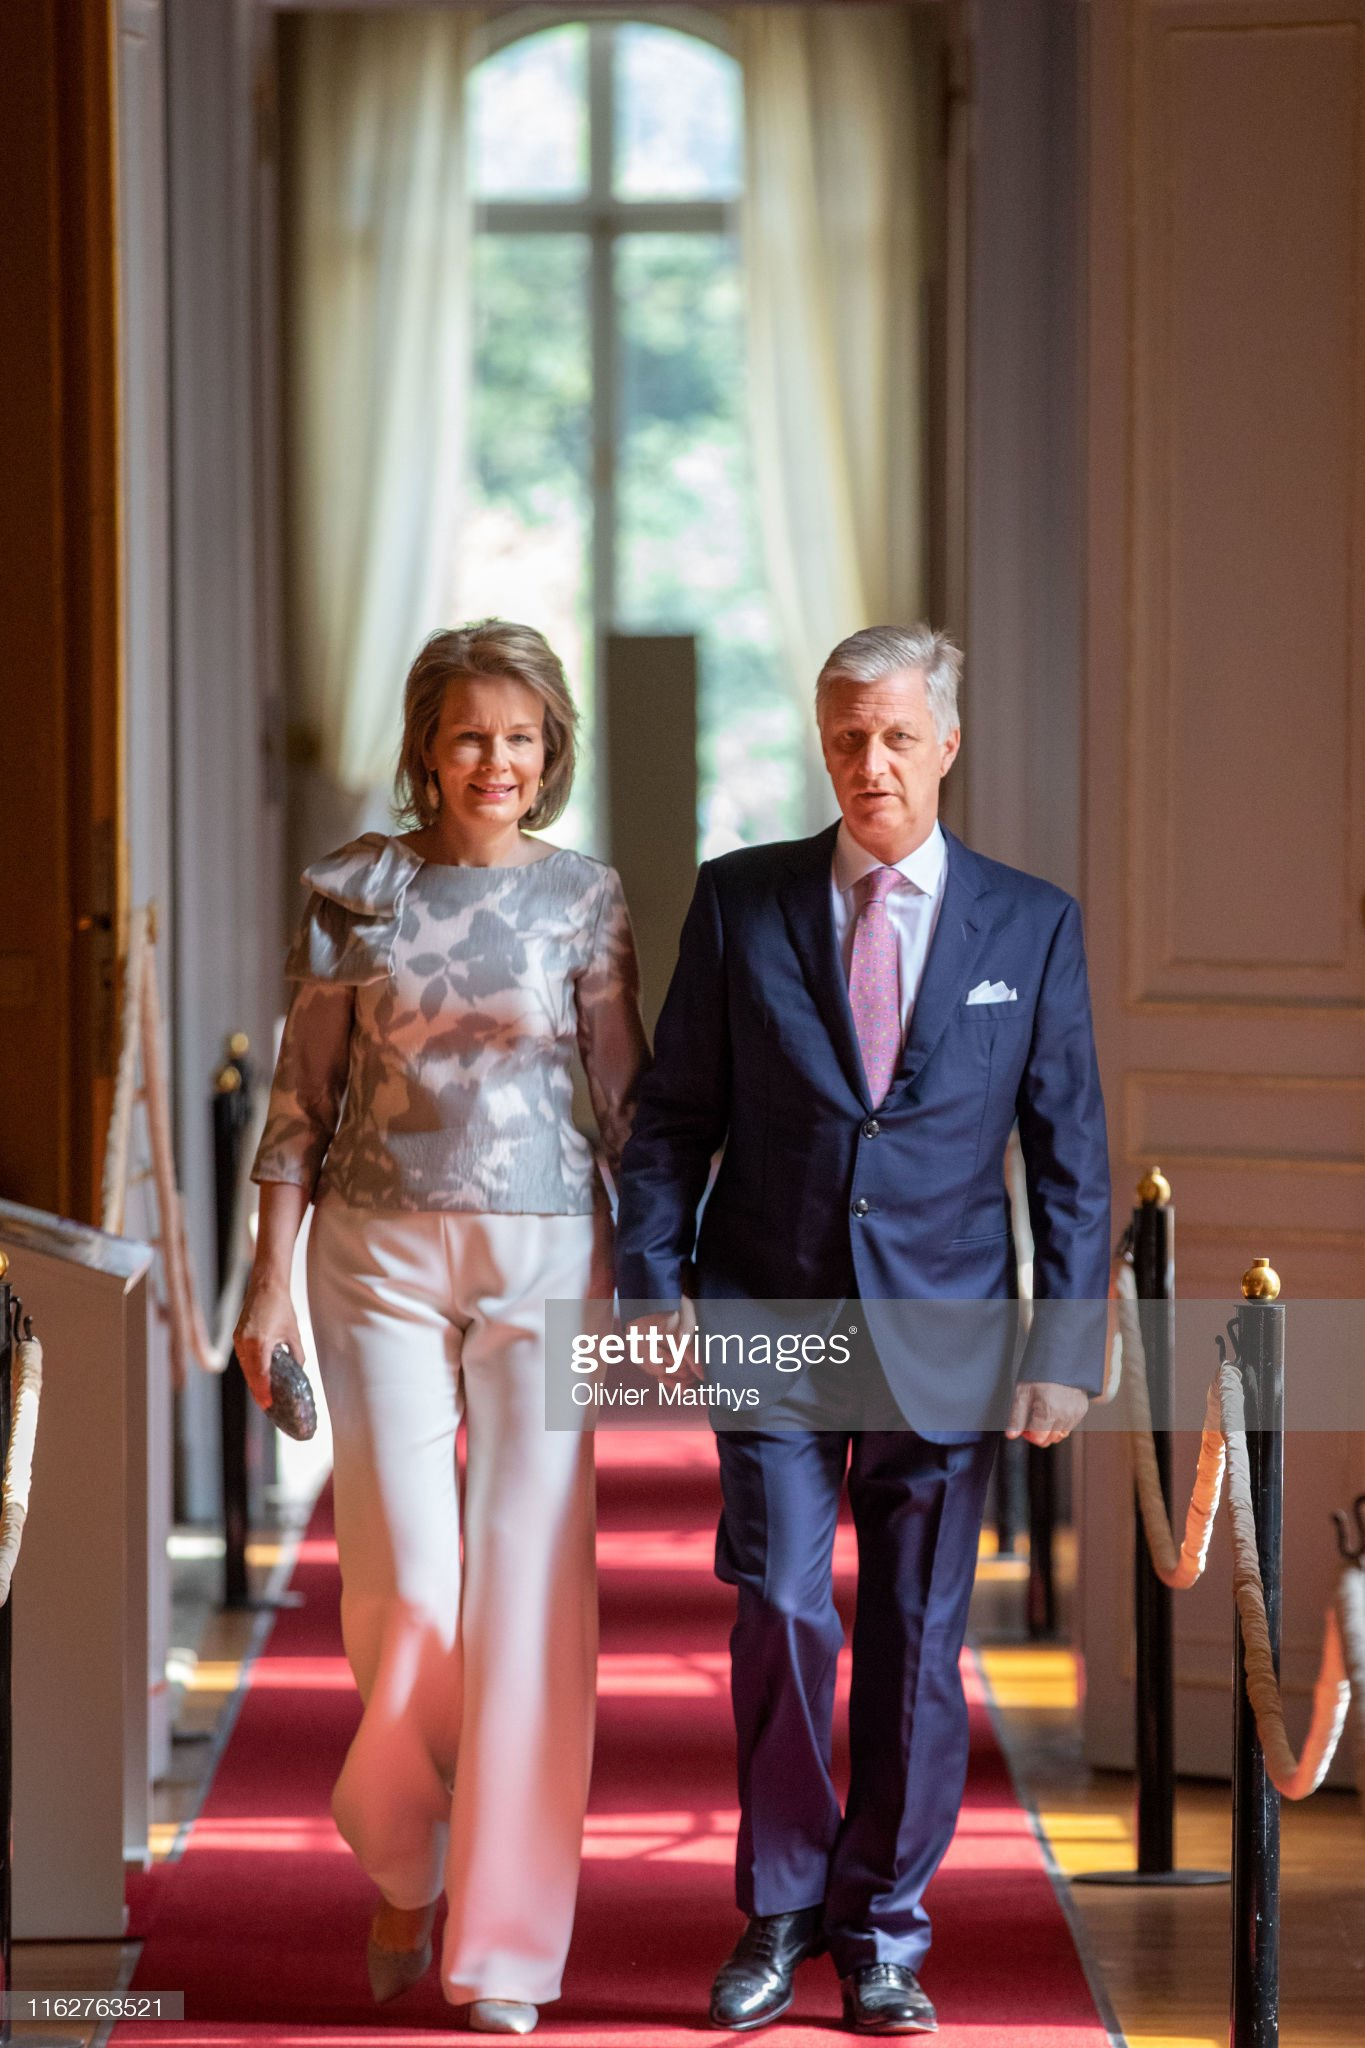 CASA REAL BELGA - Página 54 King-philippe-of-belgium-and-queen-mathilde-attend-the-summer-at-the-picture-id1162763521?s=2048x2048